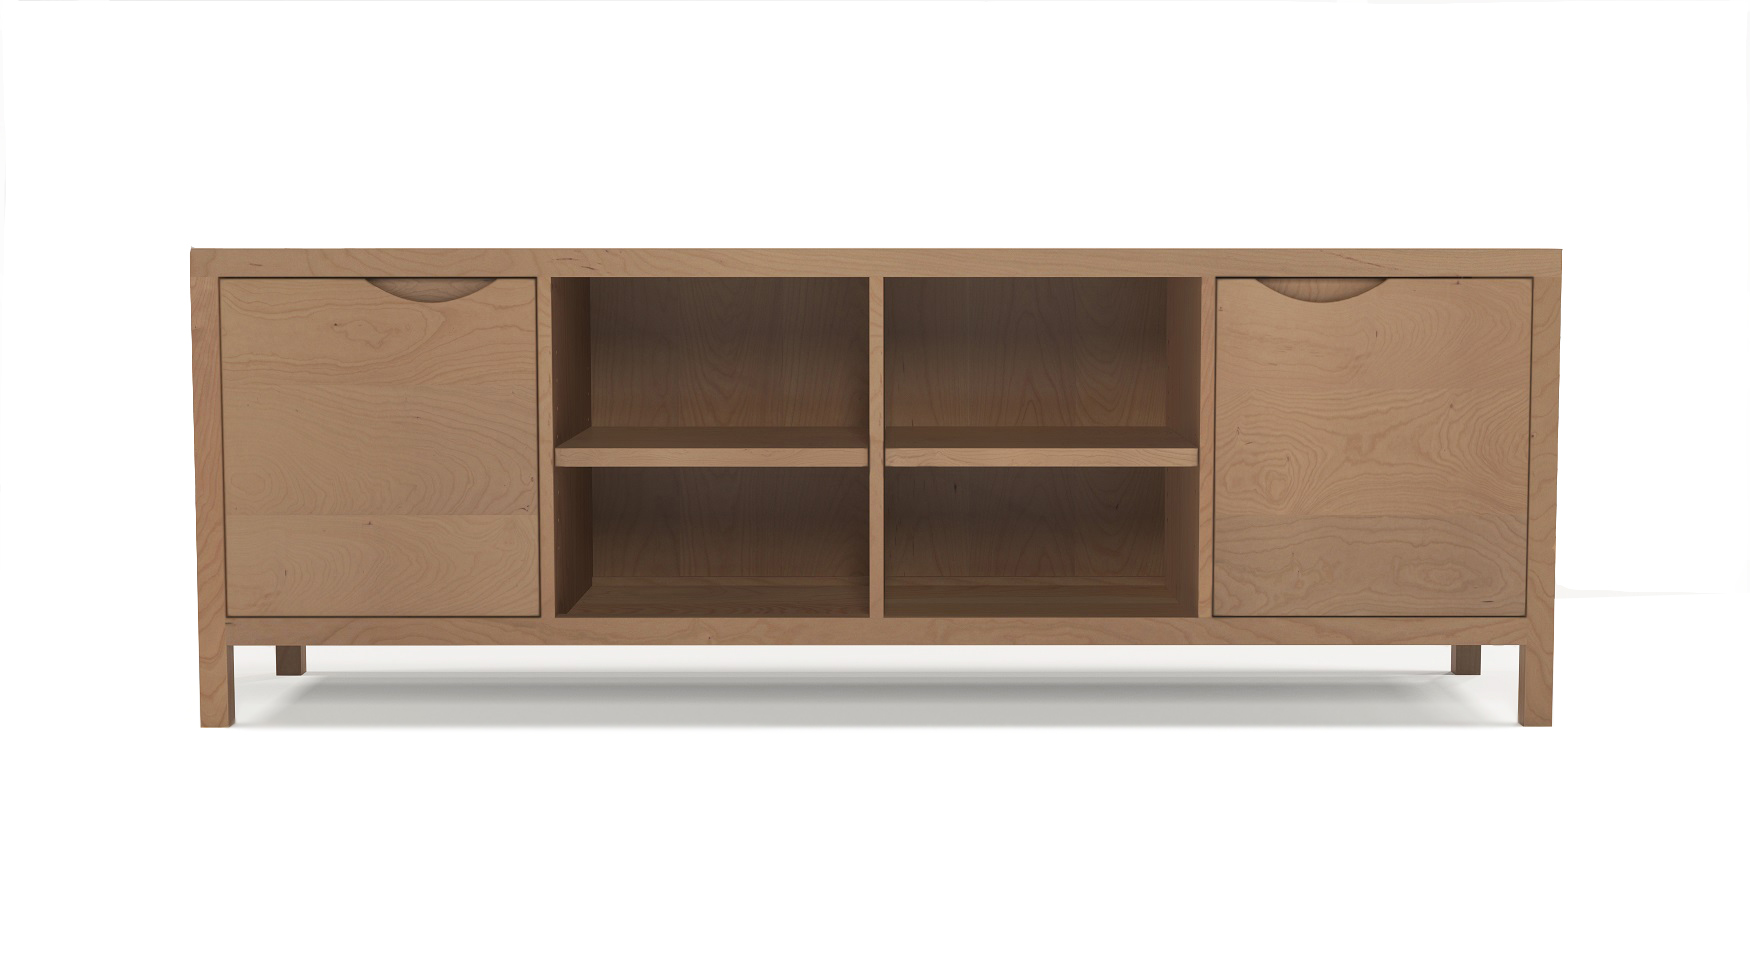 Cherry wooden media cabinet with integrated handles in the two doors